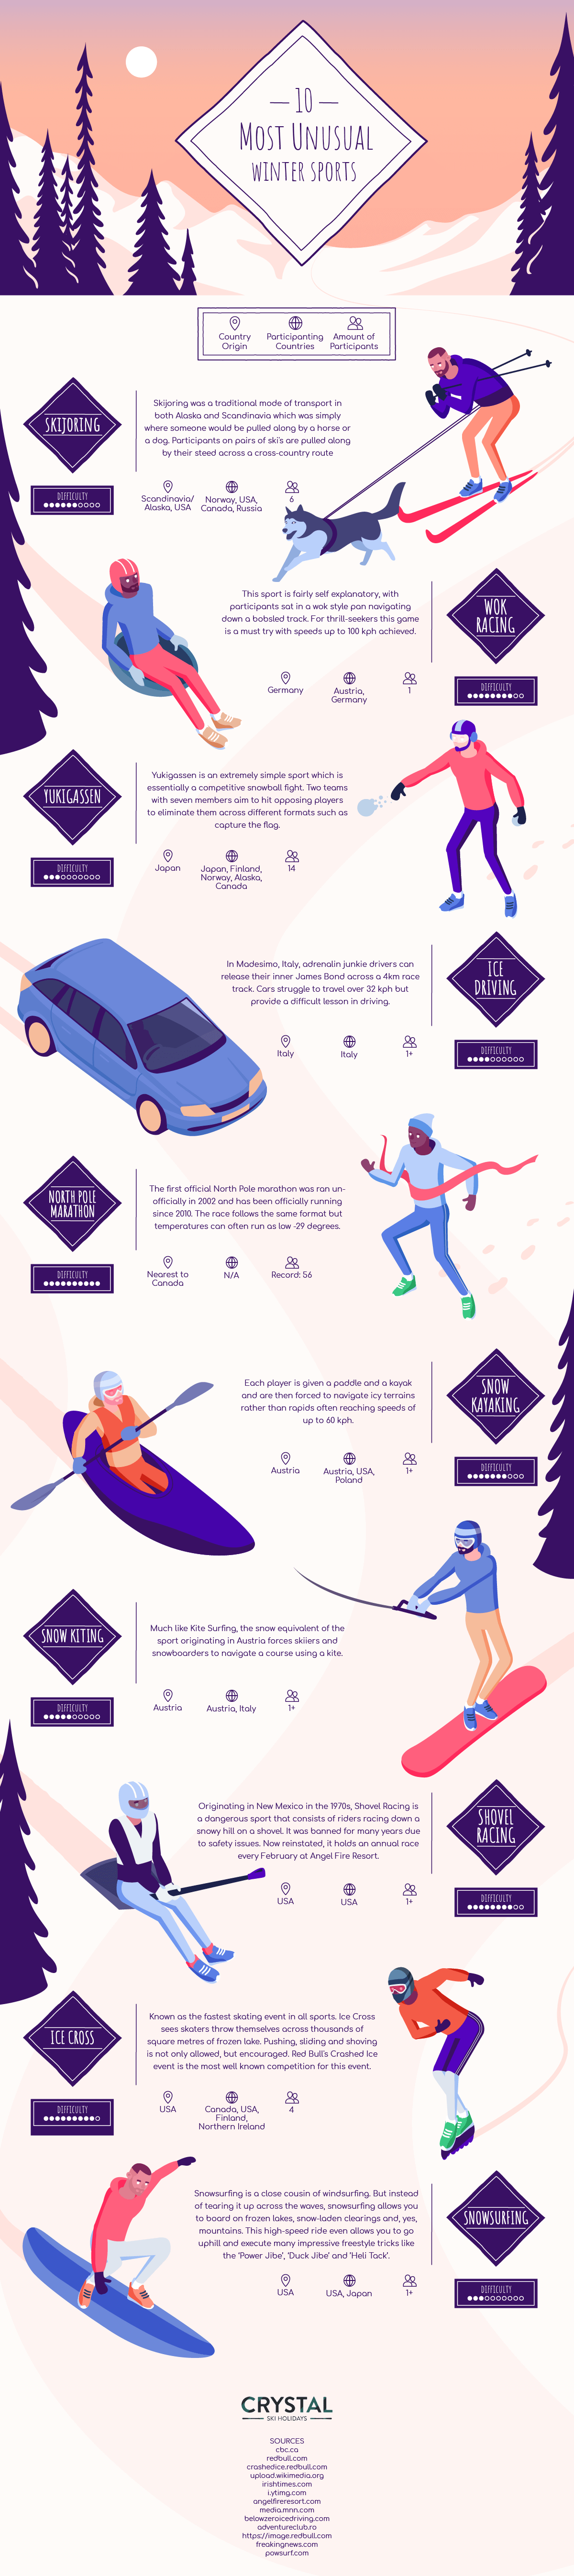 Most unusual winter sports infographic